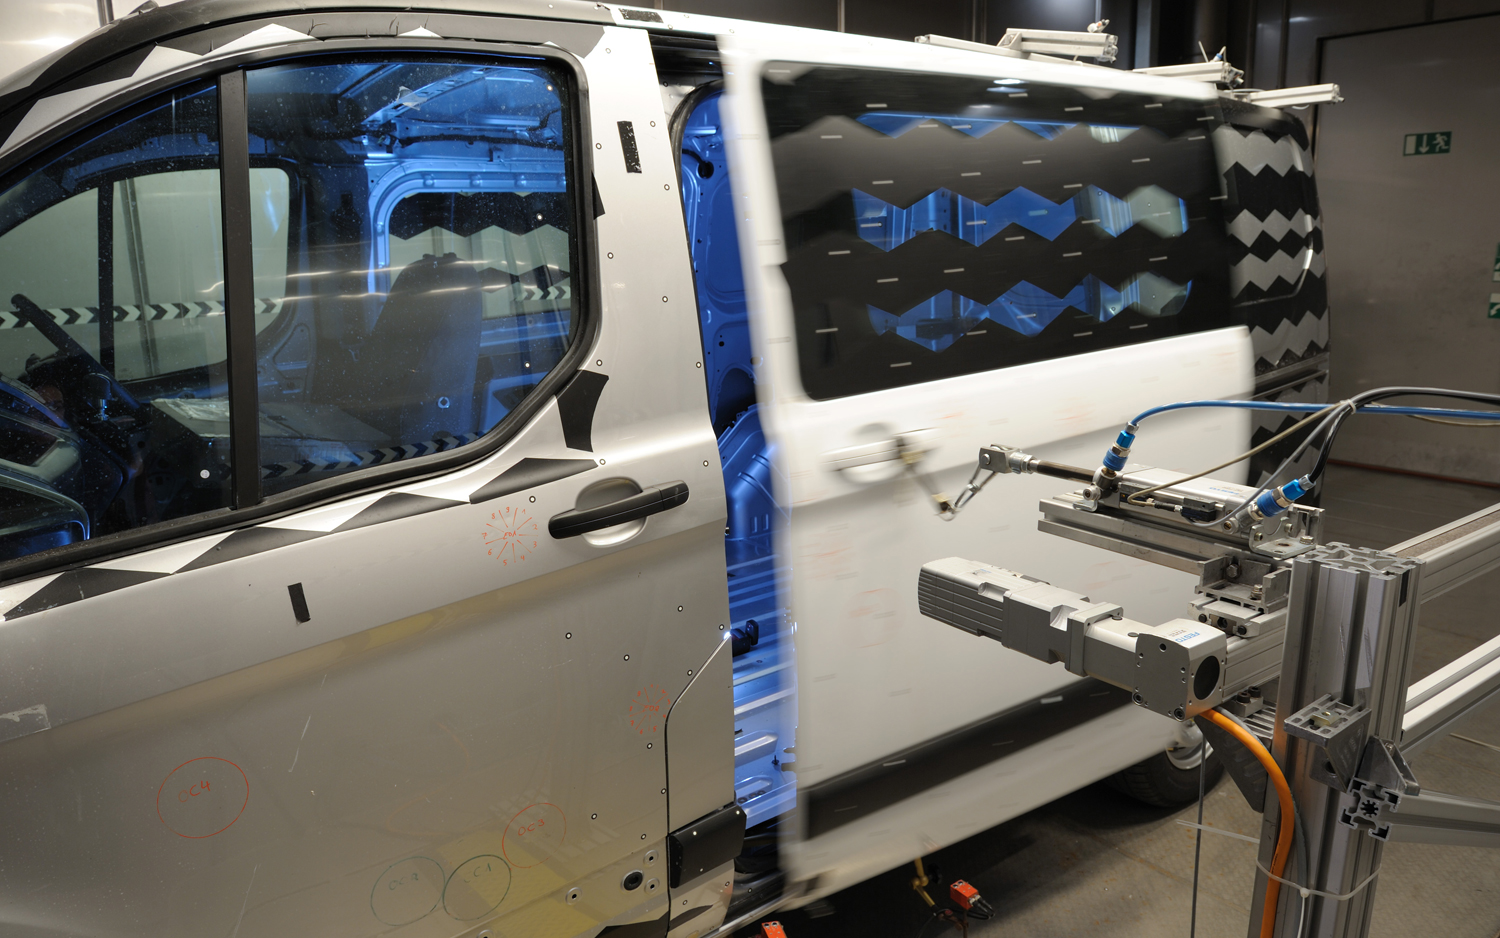 Watch Your Fingers Ford Transit Custom Van Doors Slammed 550000 Times in Torture Test & Watch Your Fingers: Ford Transit Custom Van Doors Slammed 550000 ...